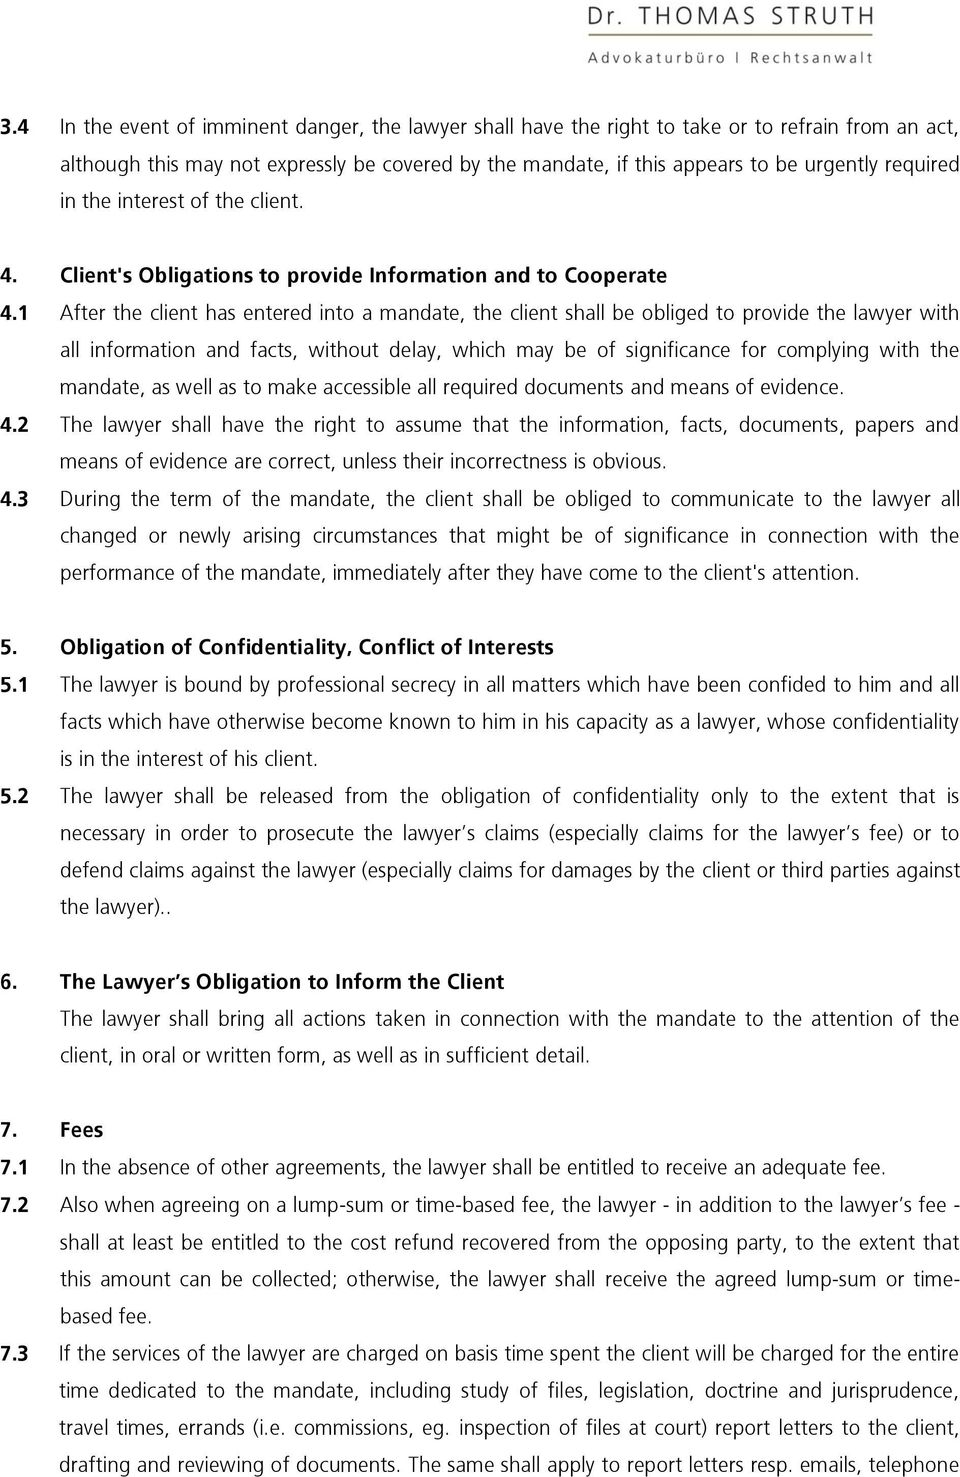 1 After the client has entered into a mandate, the client shall be obliged to provide the lawyer with all information and facts, without delay, which may be of significance for complying with the